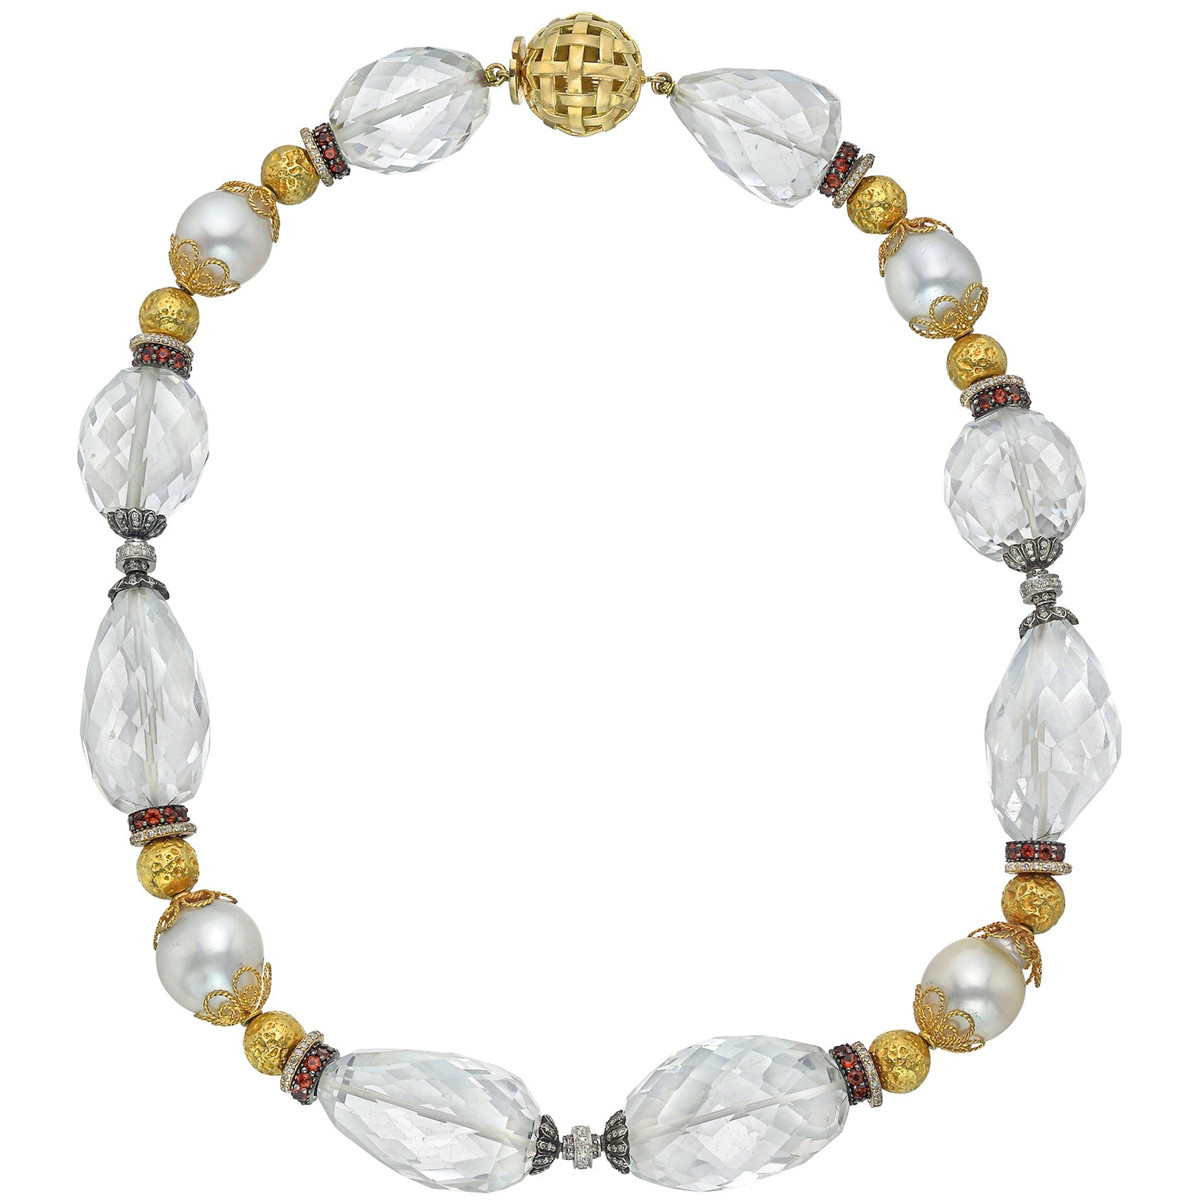 Rock Crystal, Pearl & Gem-Set Bead Necklace